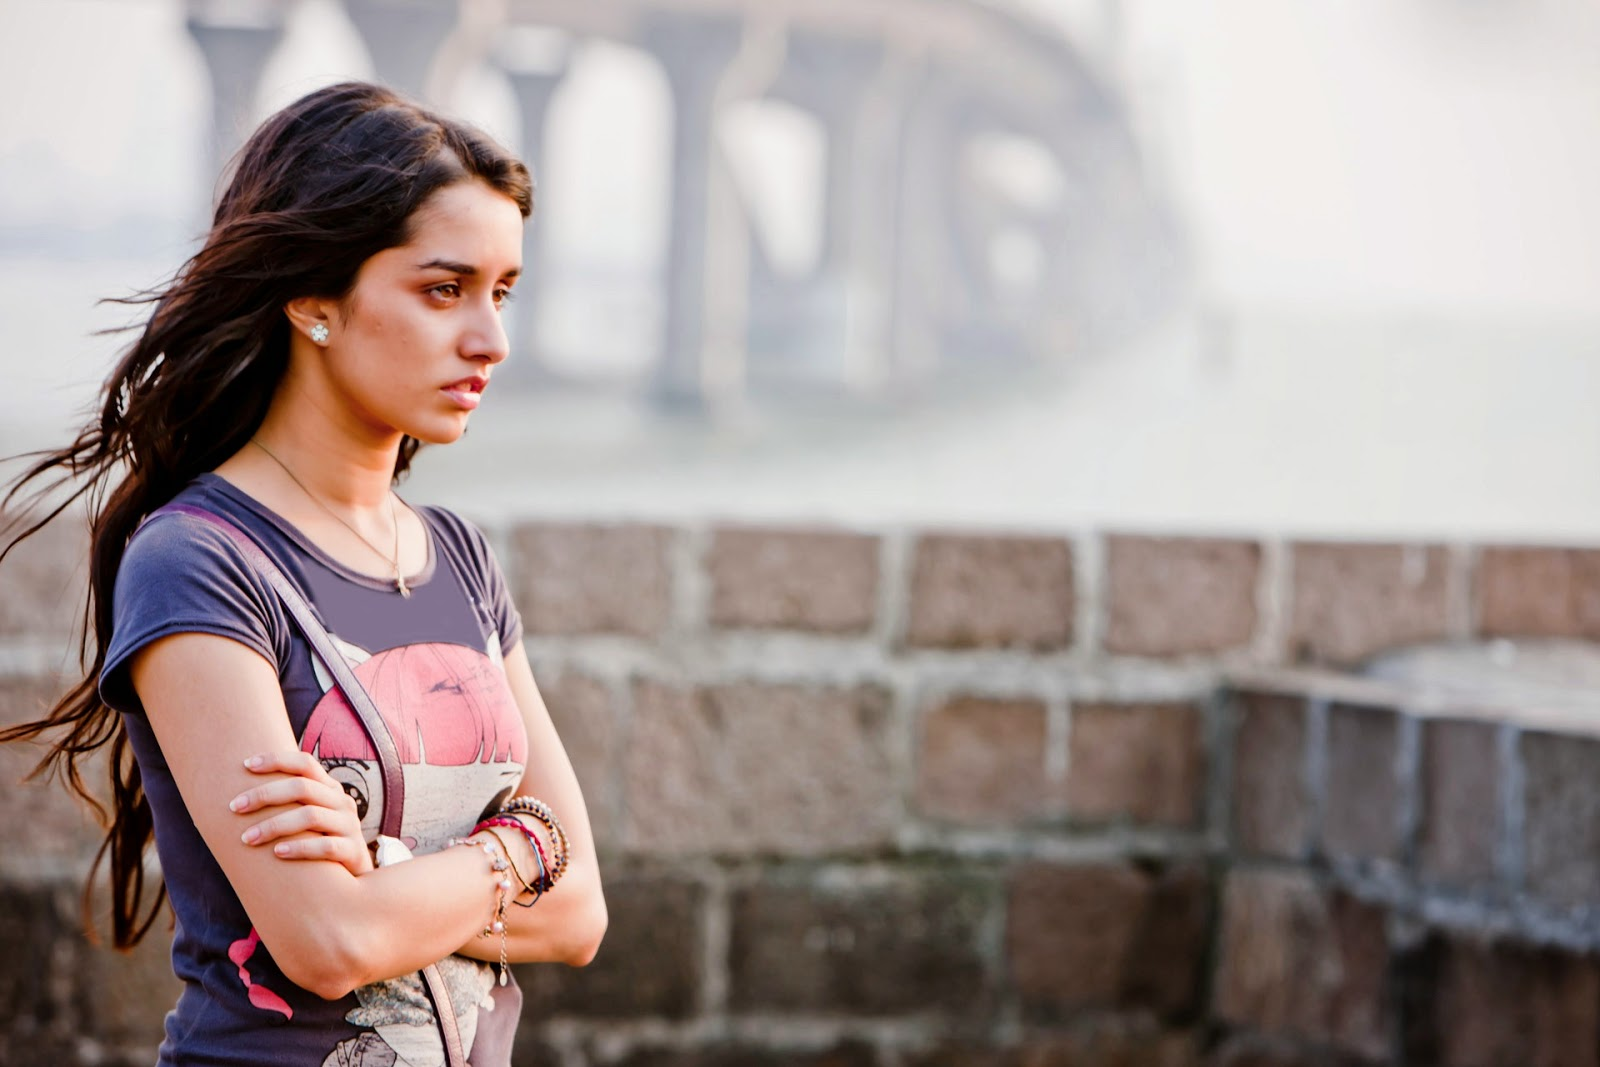 Download Shraddha Kapoor In Aashiqui 2 Movie Hd Wallpaper: Download All Aplication